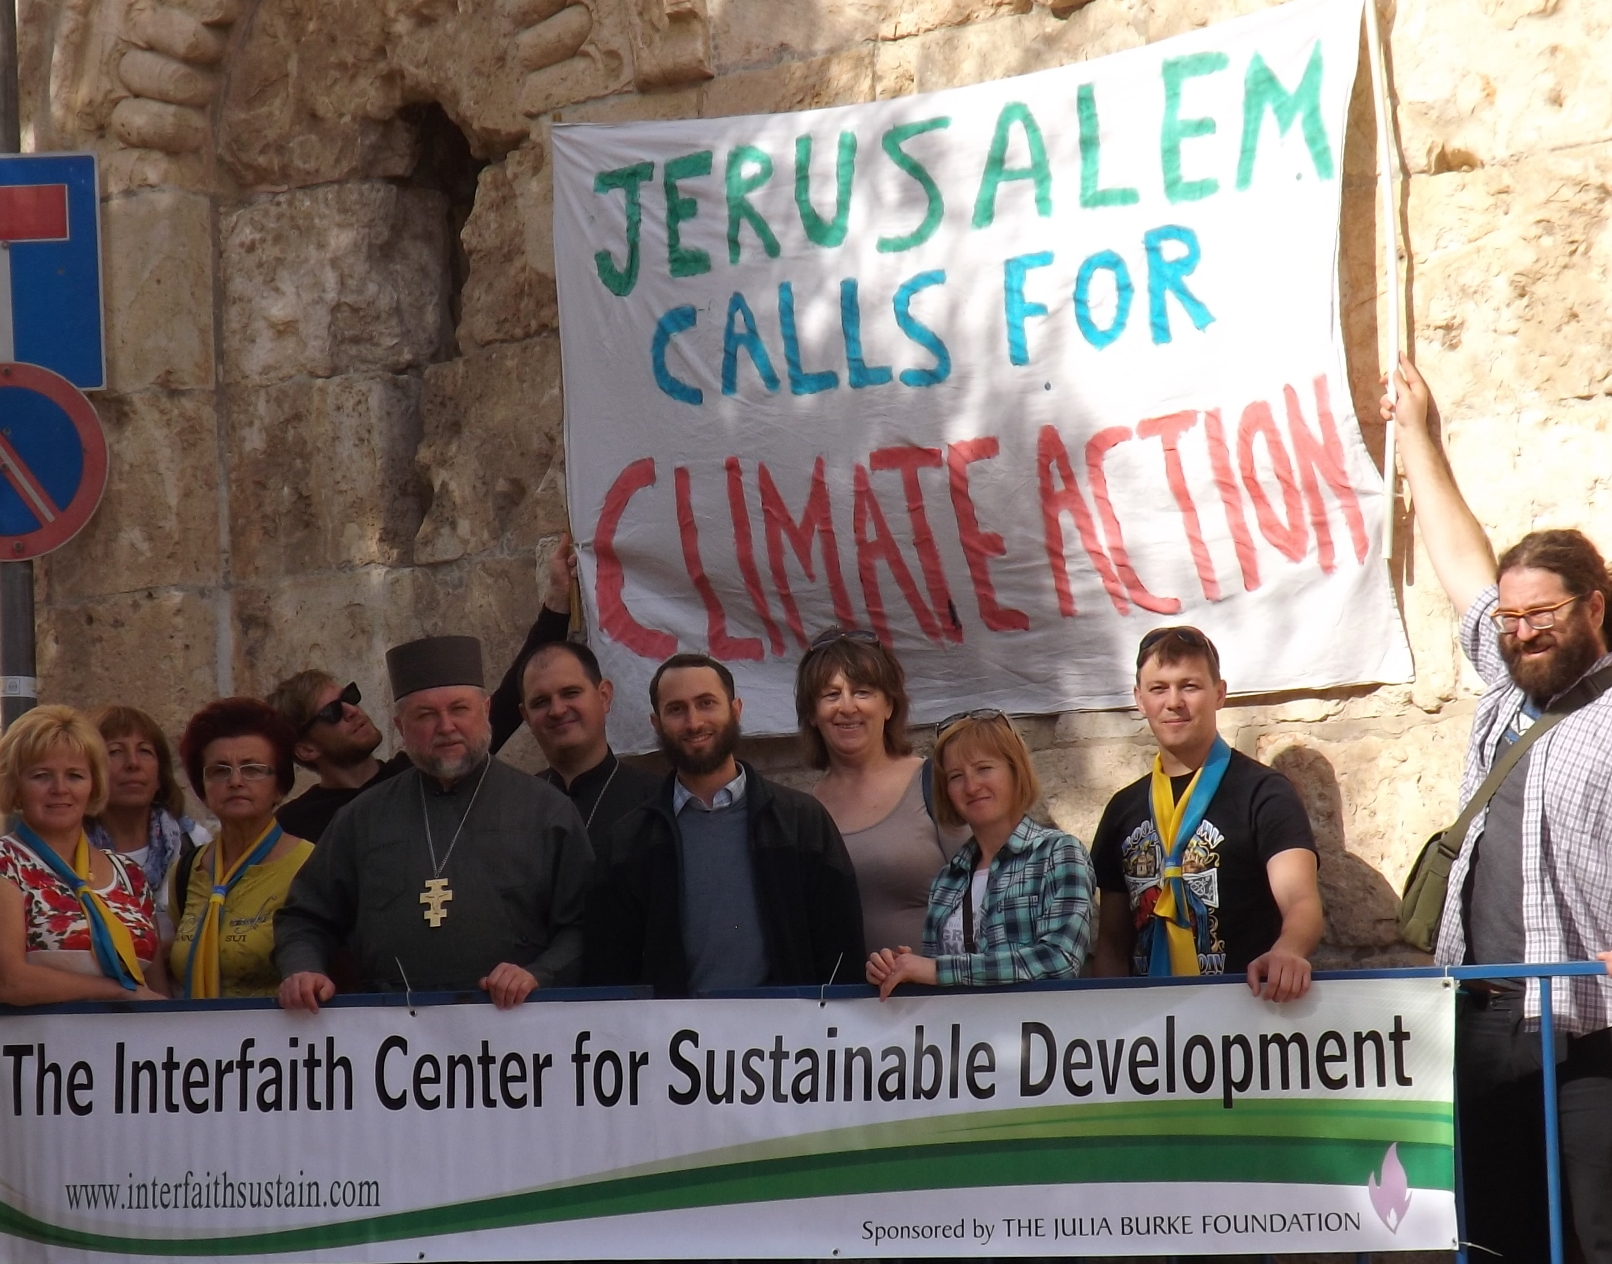 Photo courtesy of The Interfaith Center for Sustainable Development